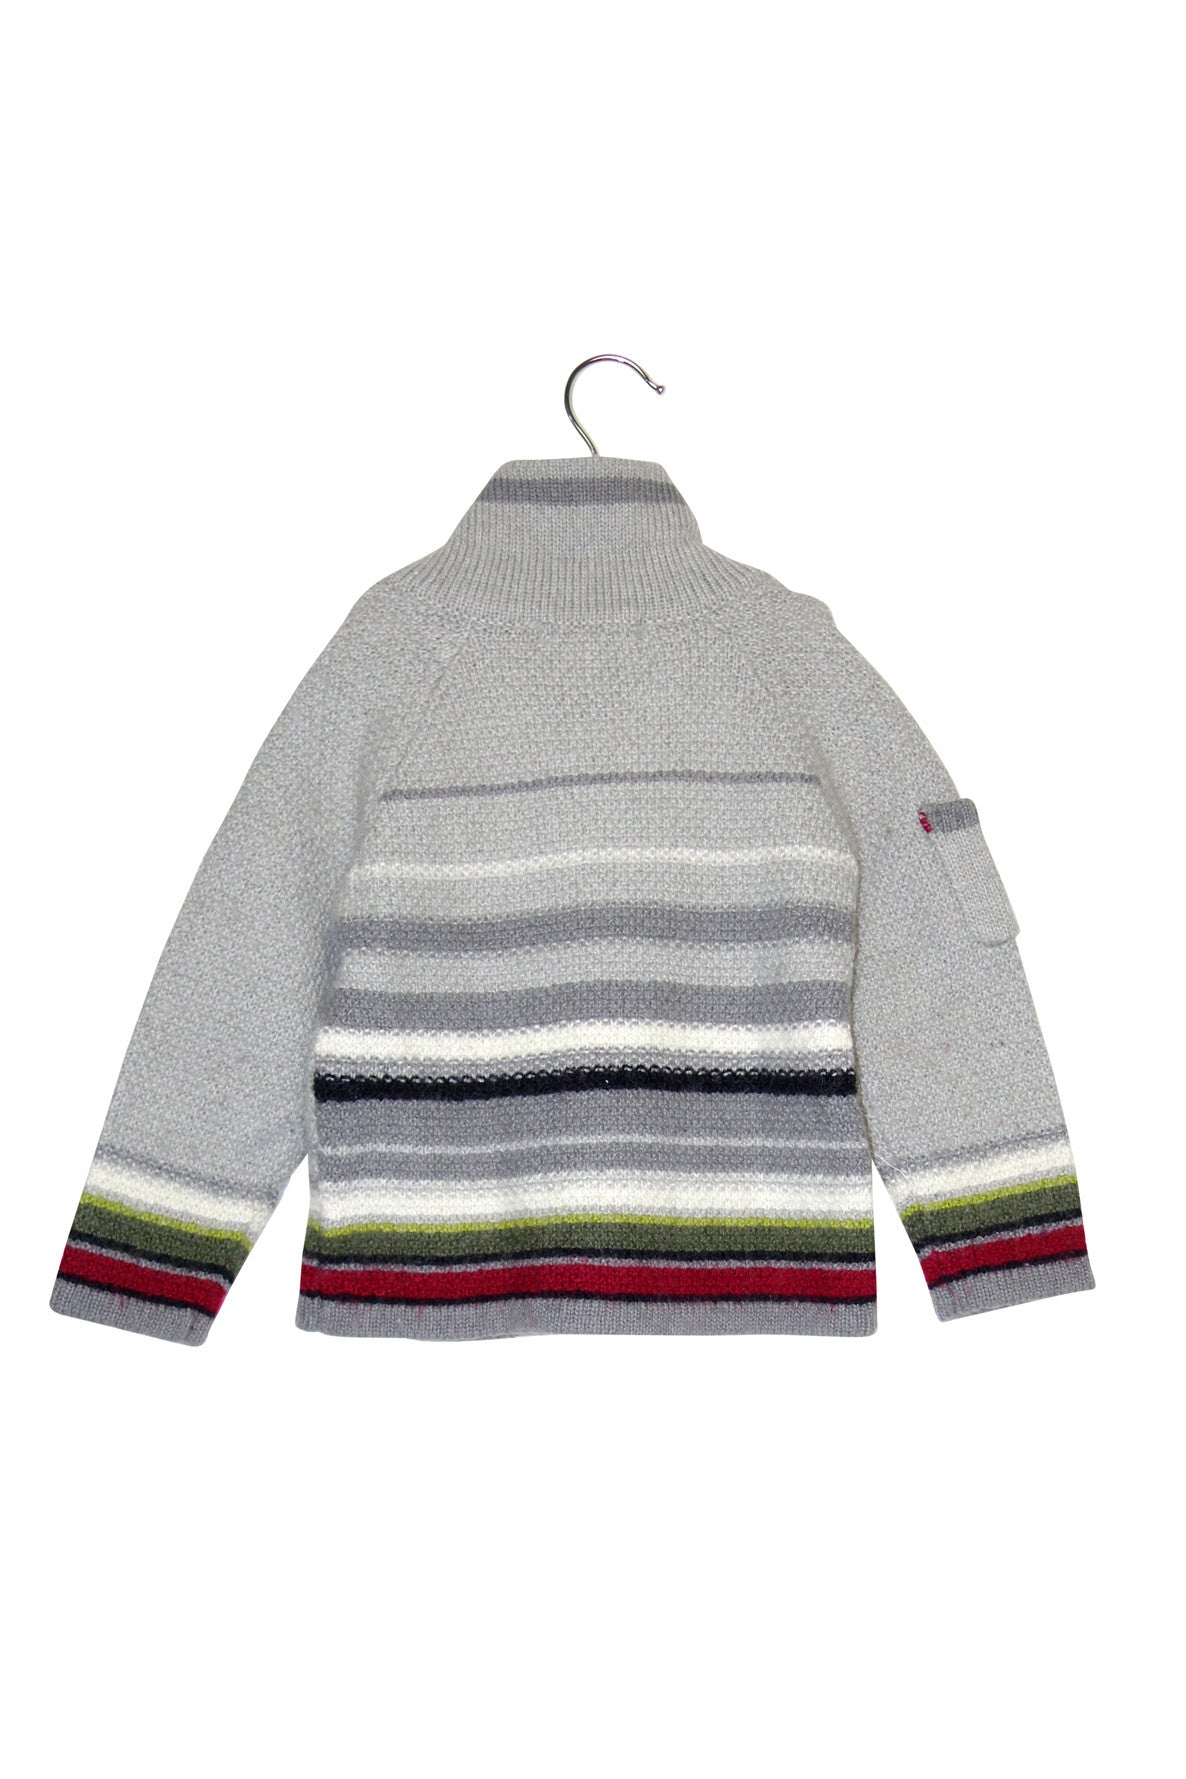 10001396 Kenzo Kids~Sweater 3T at Retykle